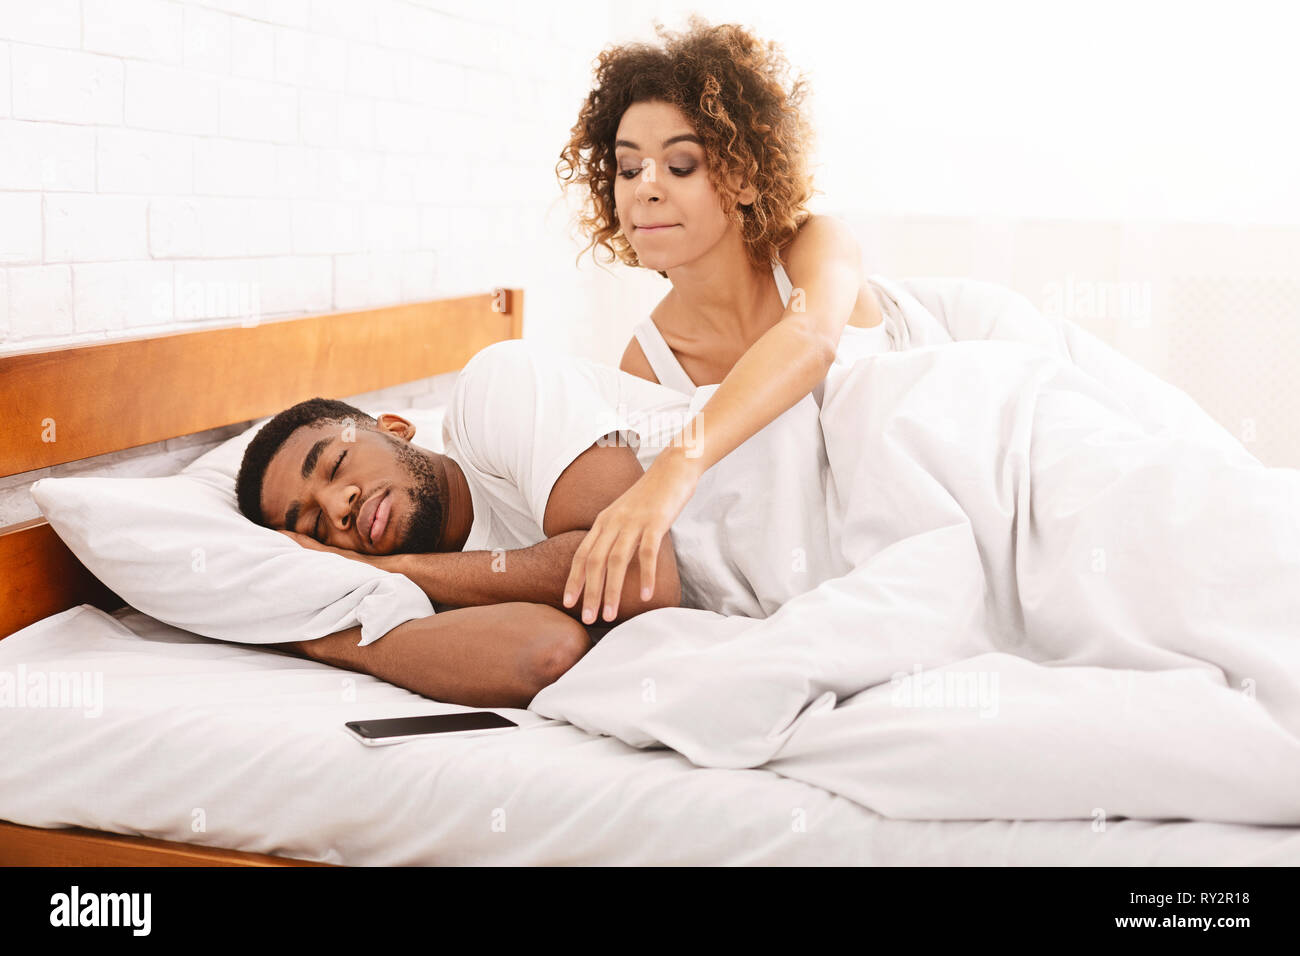 Suspicious wife checking her sleeping husband cellphone in bed - Stock Image